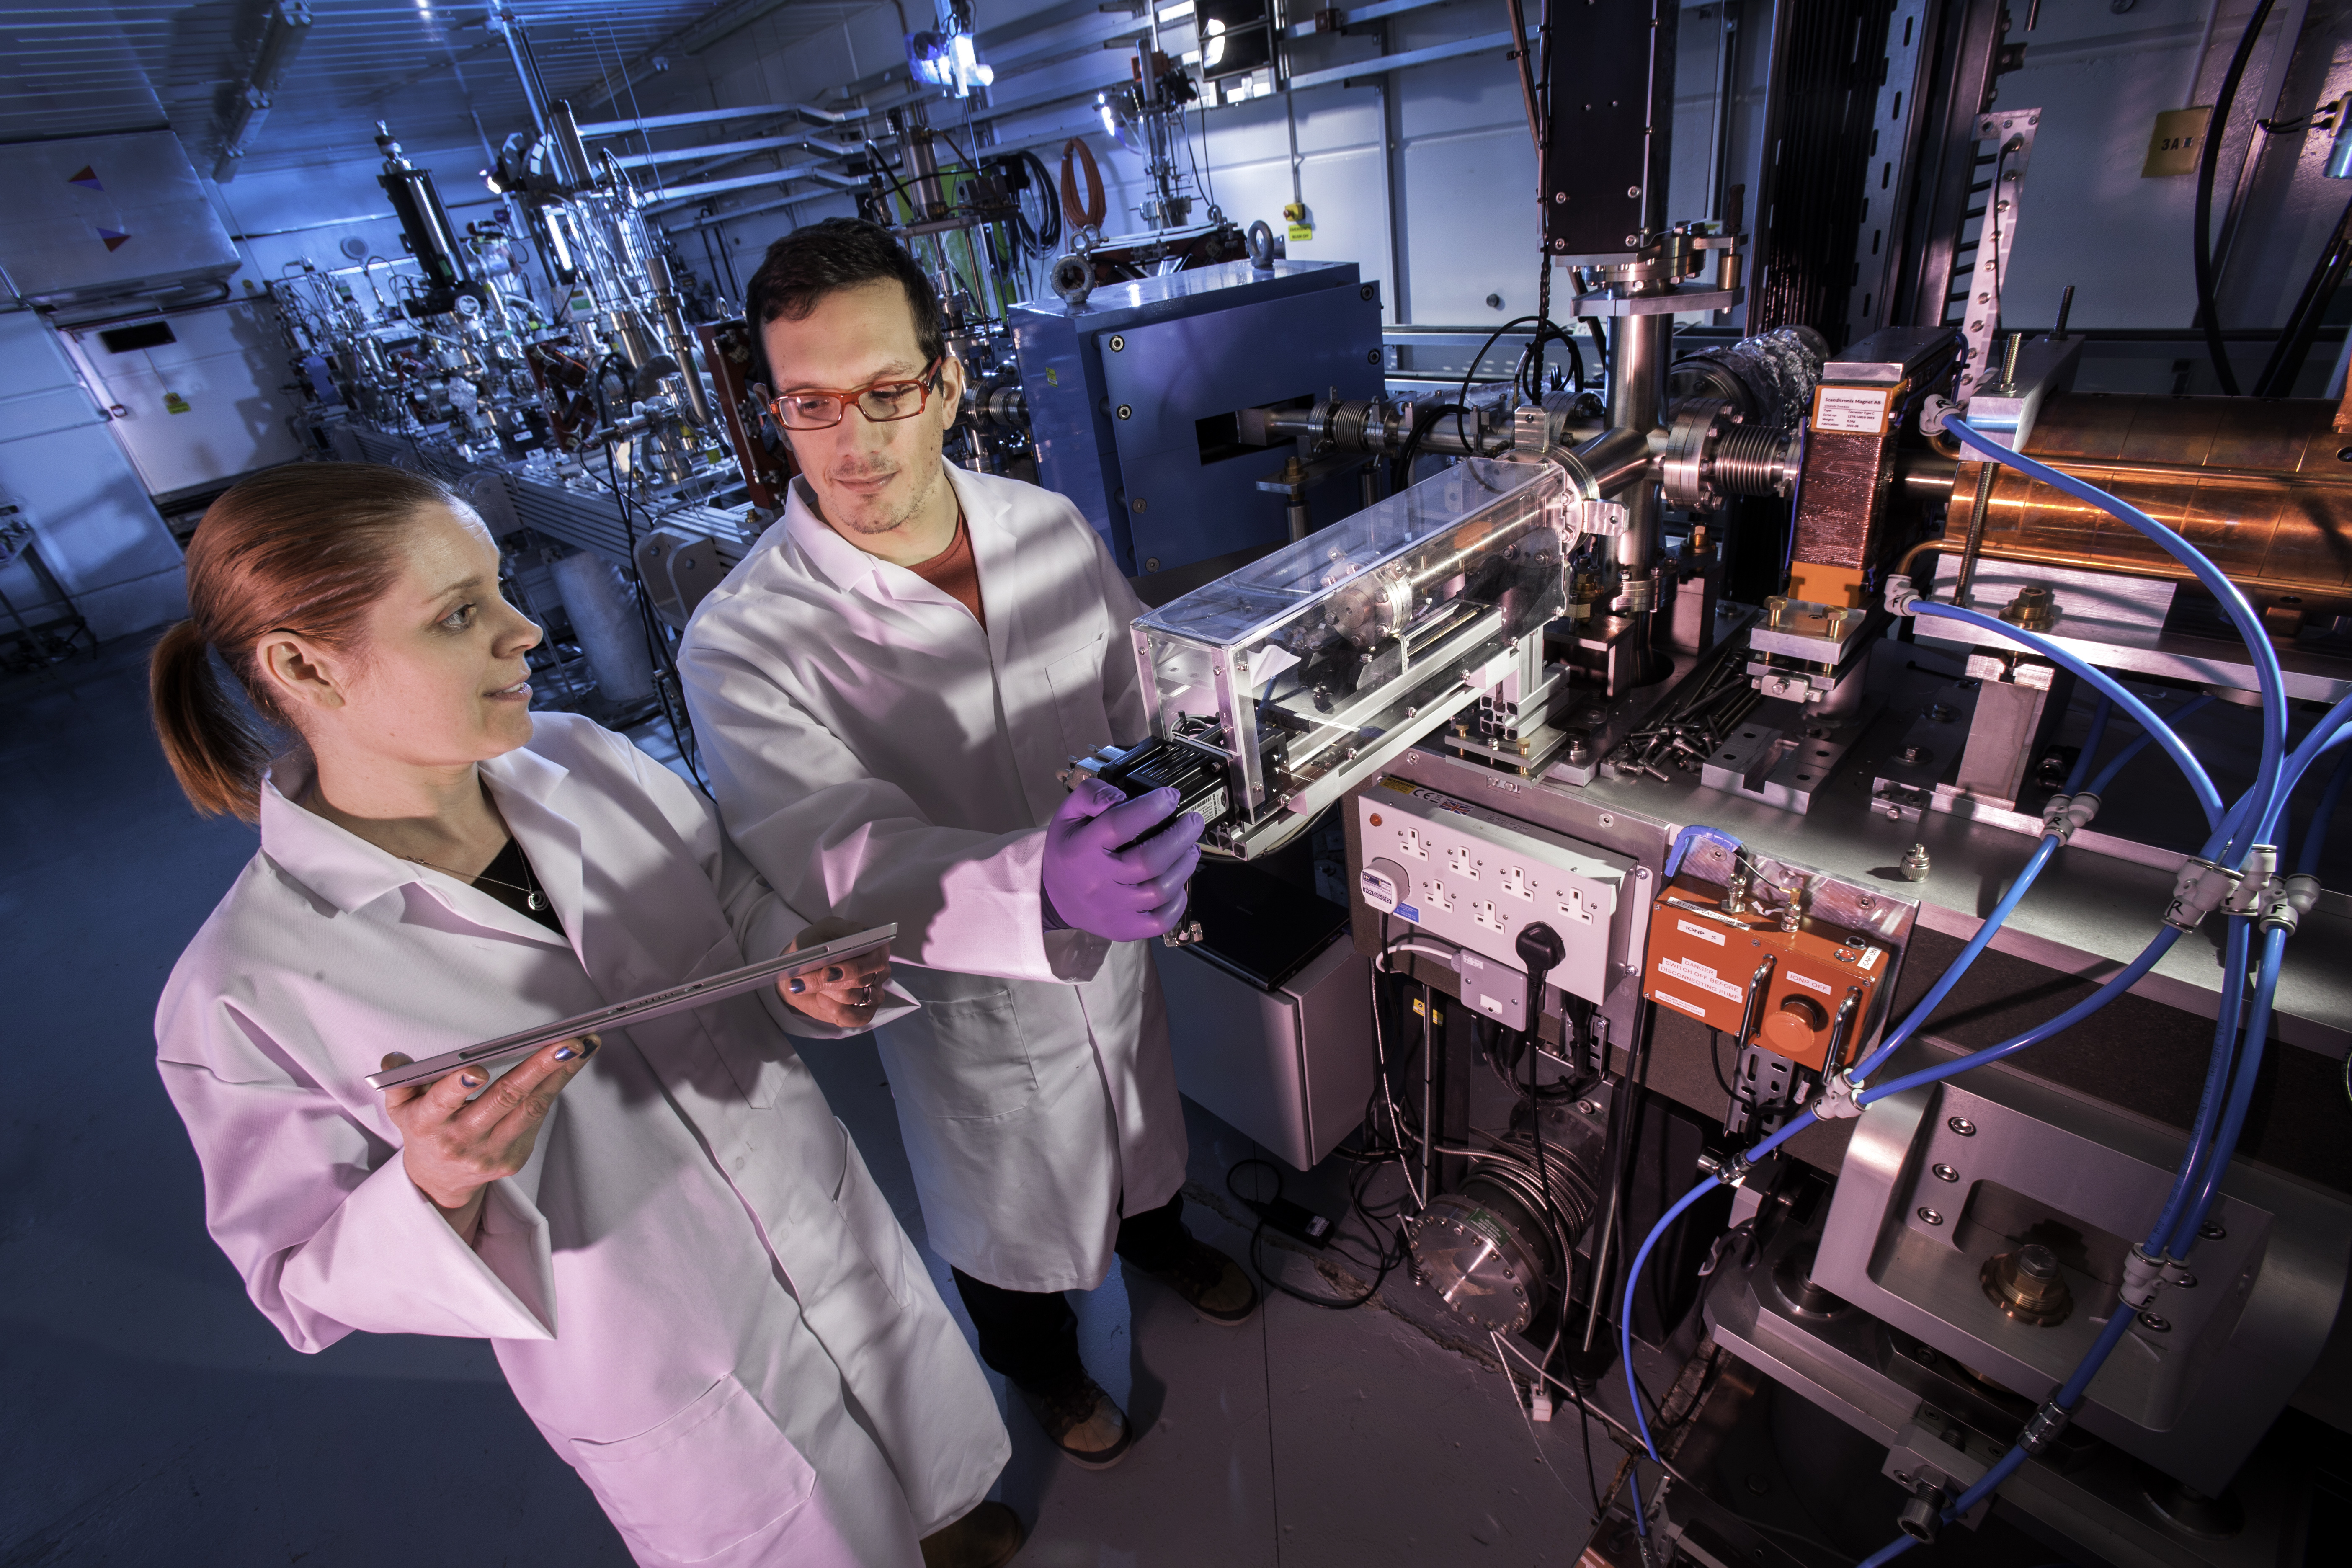 Two people stood alongside a particle accelerator